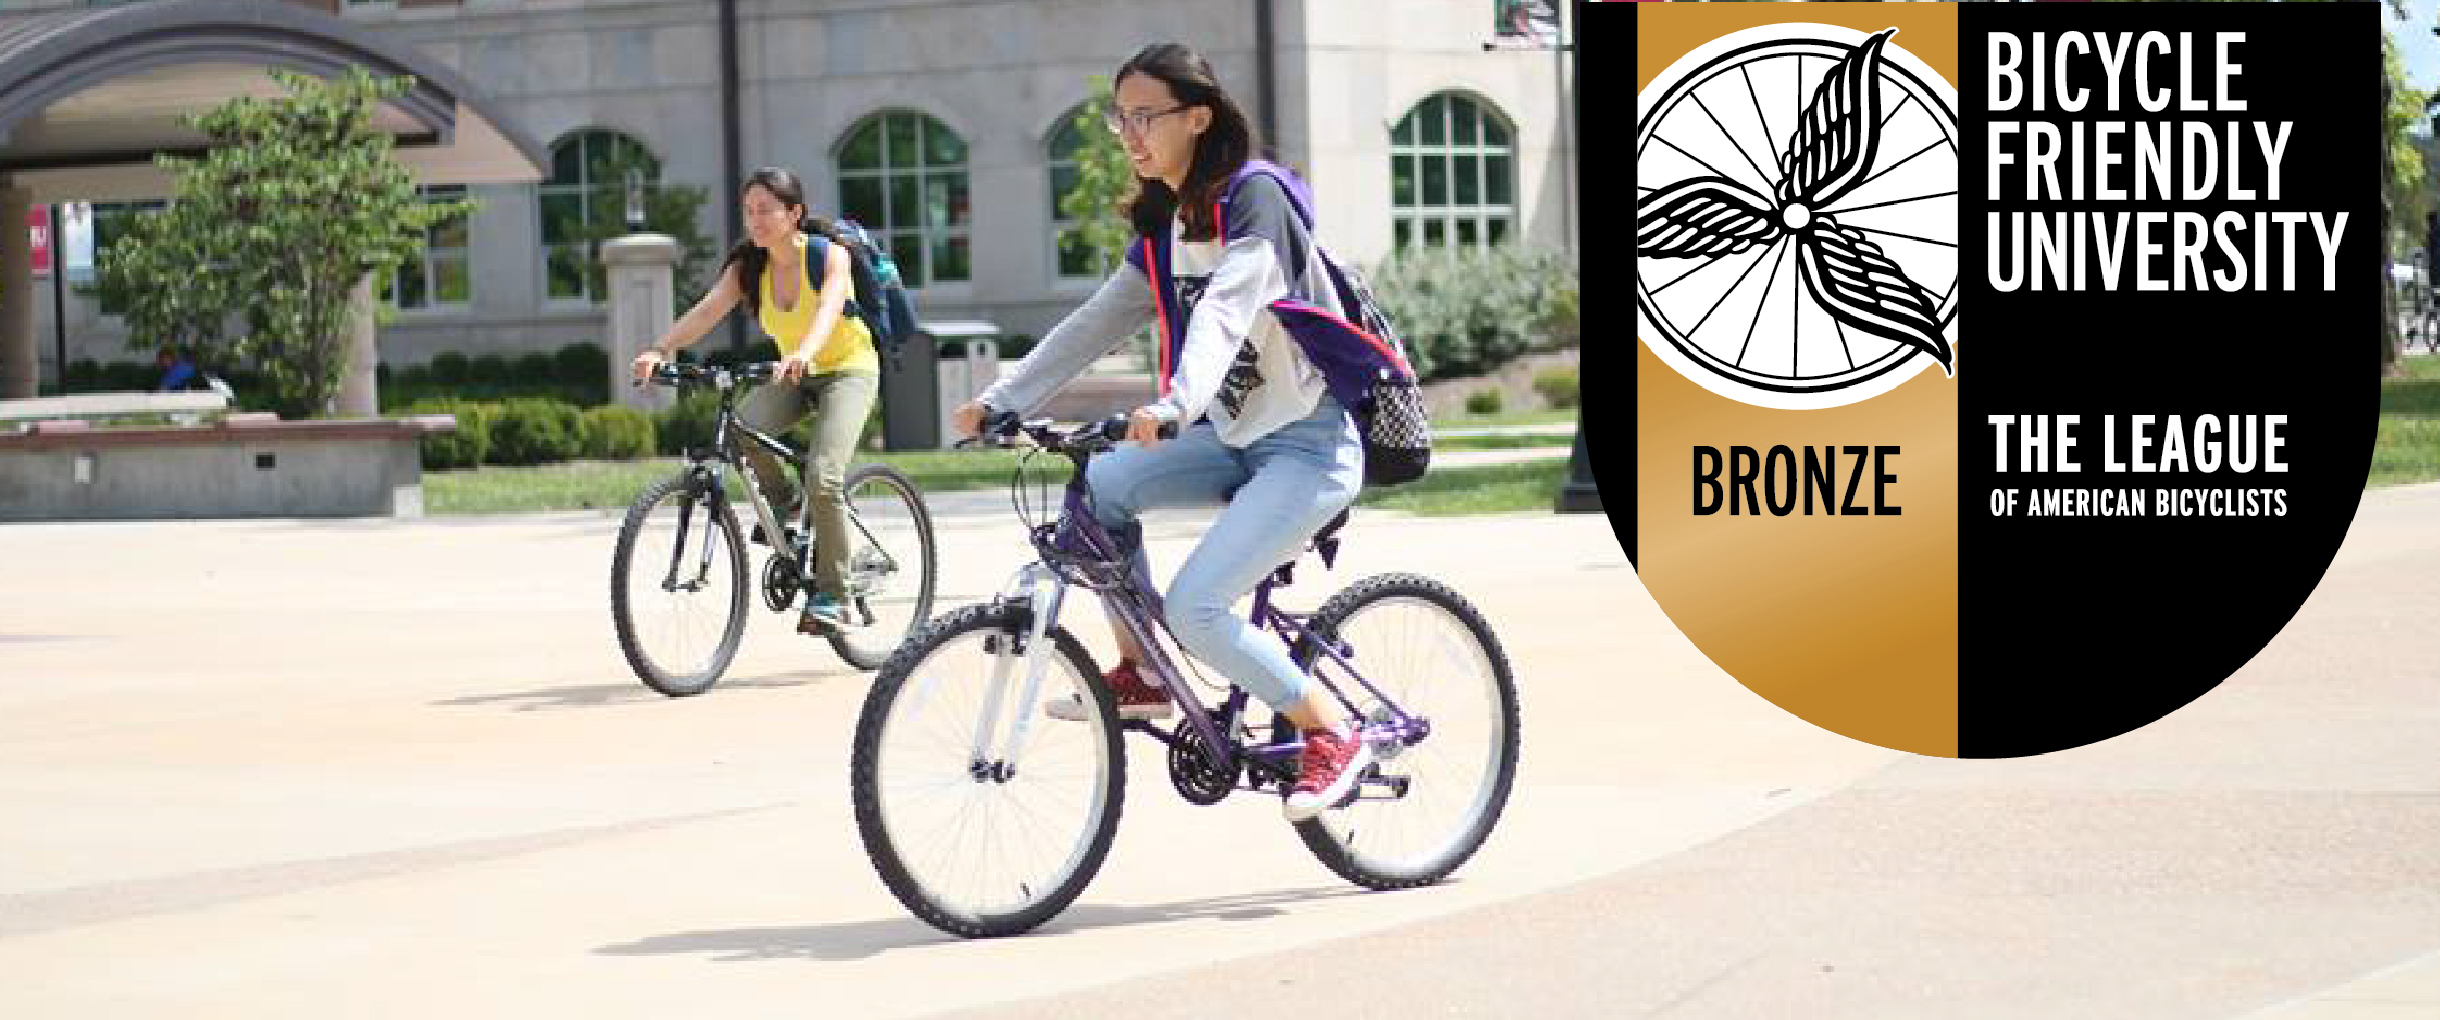 a bicyclist enjoys campus, bicycle friendly university symbol included